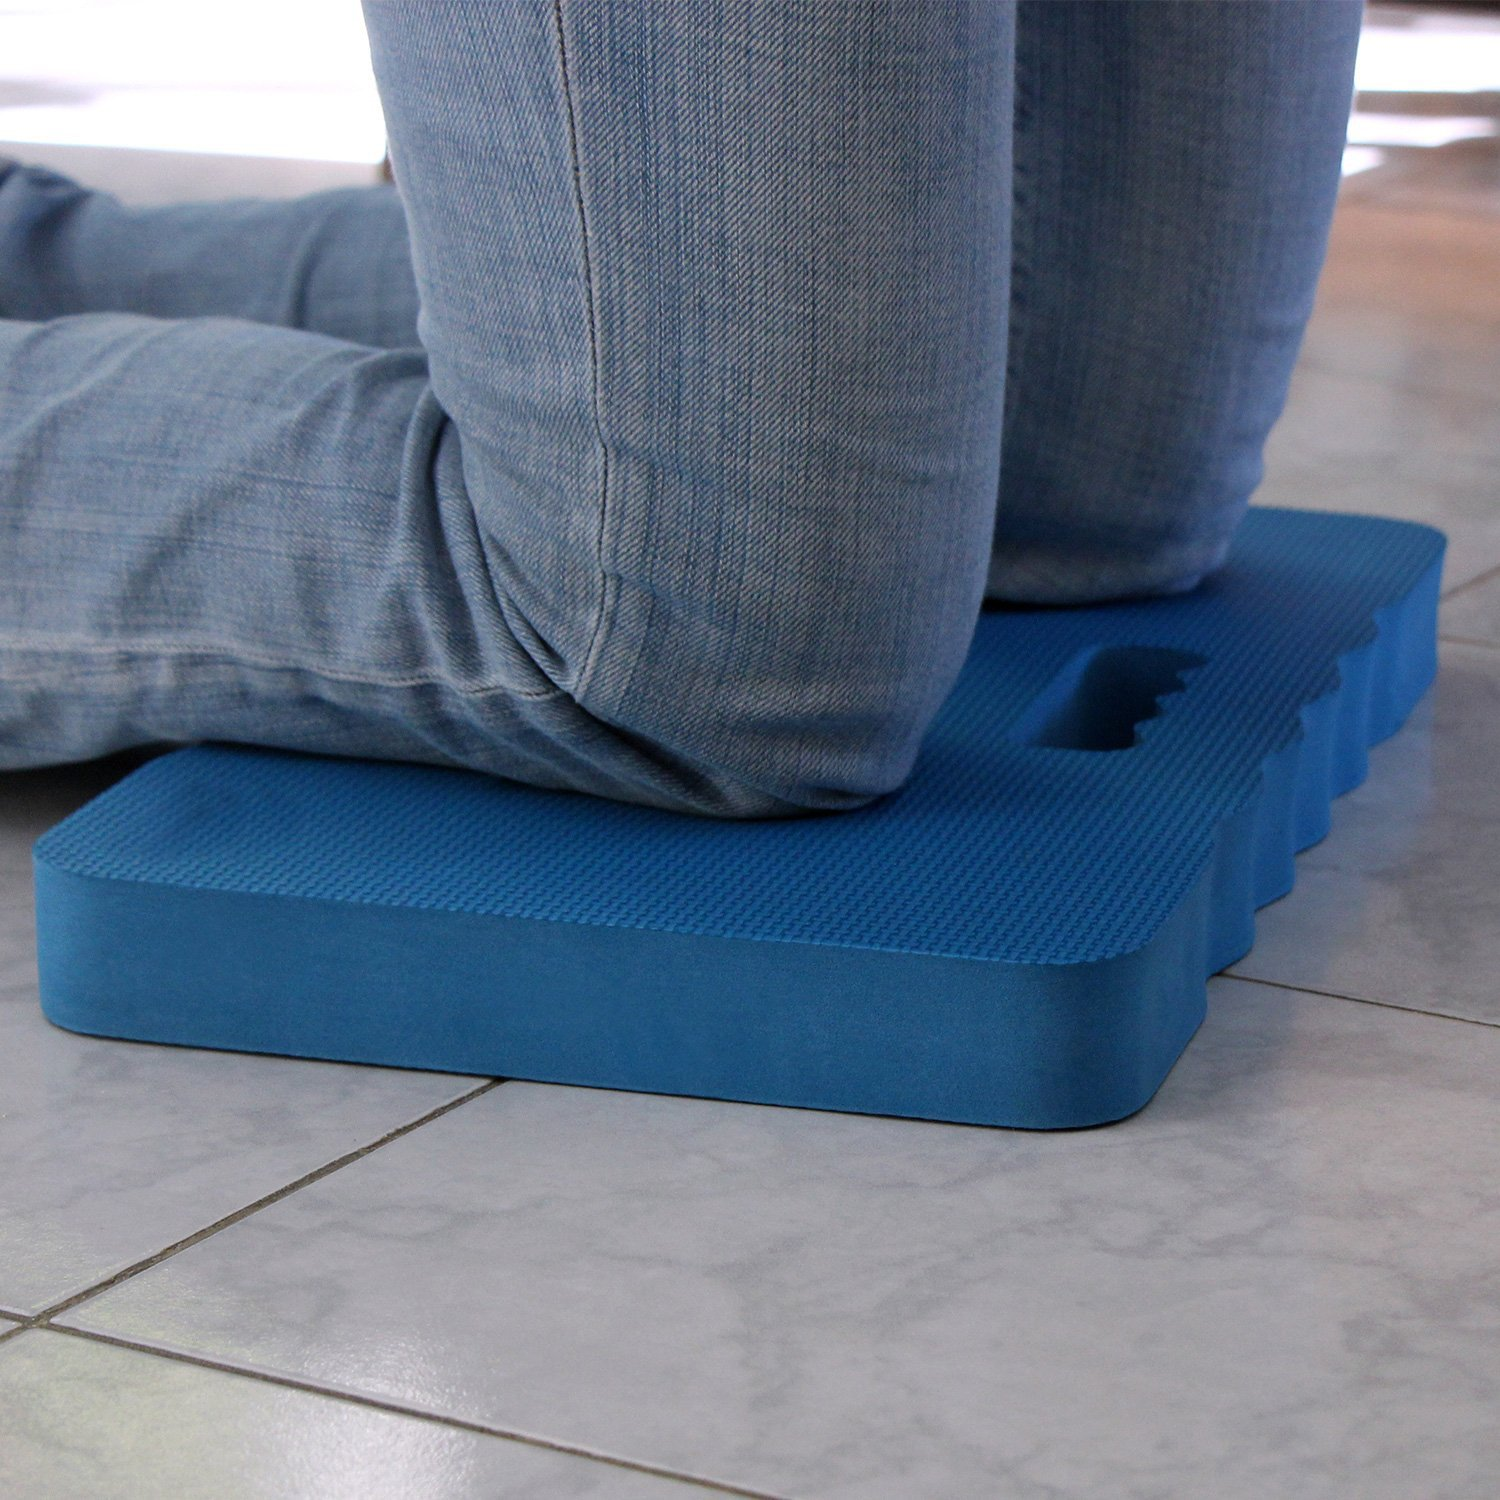 High Density Thick Garden Kneelers Knee pad//Cushion for Prayer Bath Kneeler for Baby Bath Protection for Construction Workers Havenna Large Kneeling Pad Kneeling Mat for Exercise /& Yoga